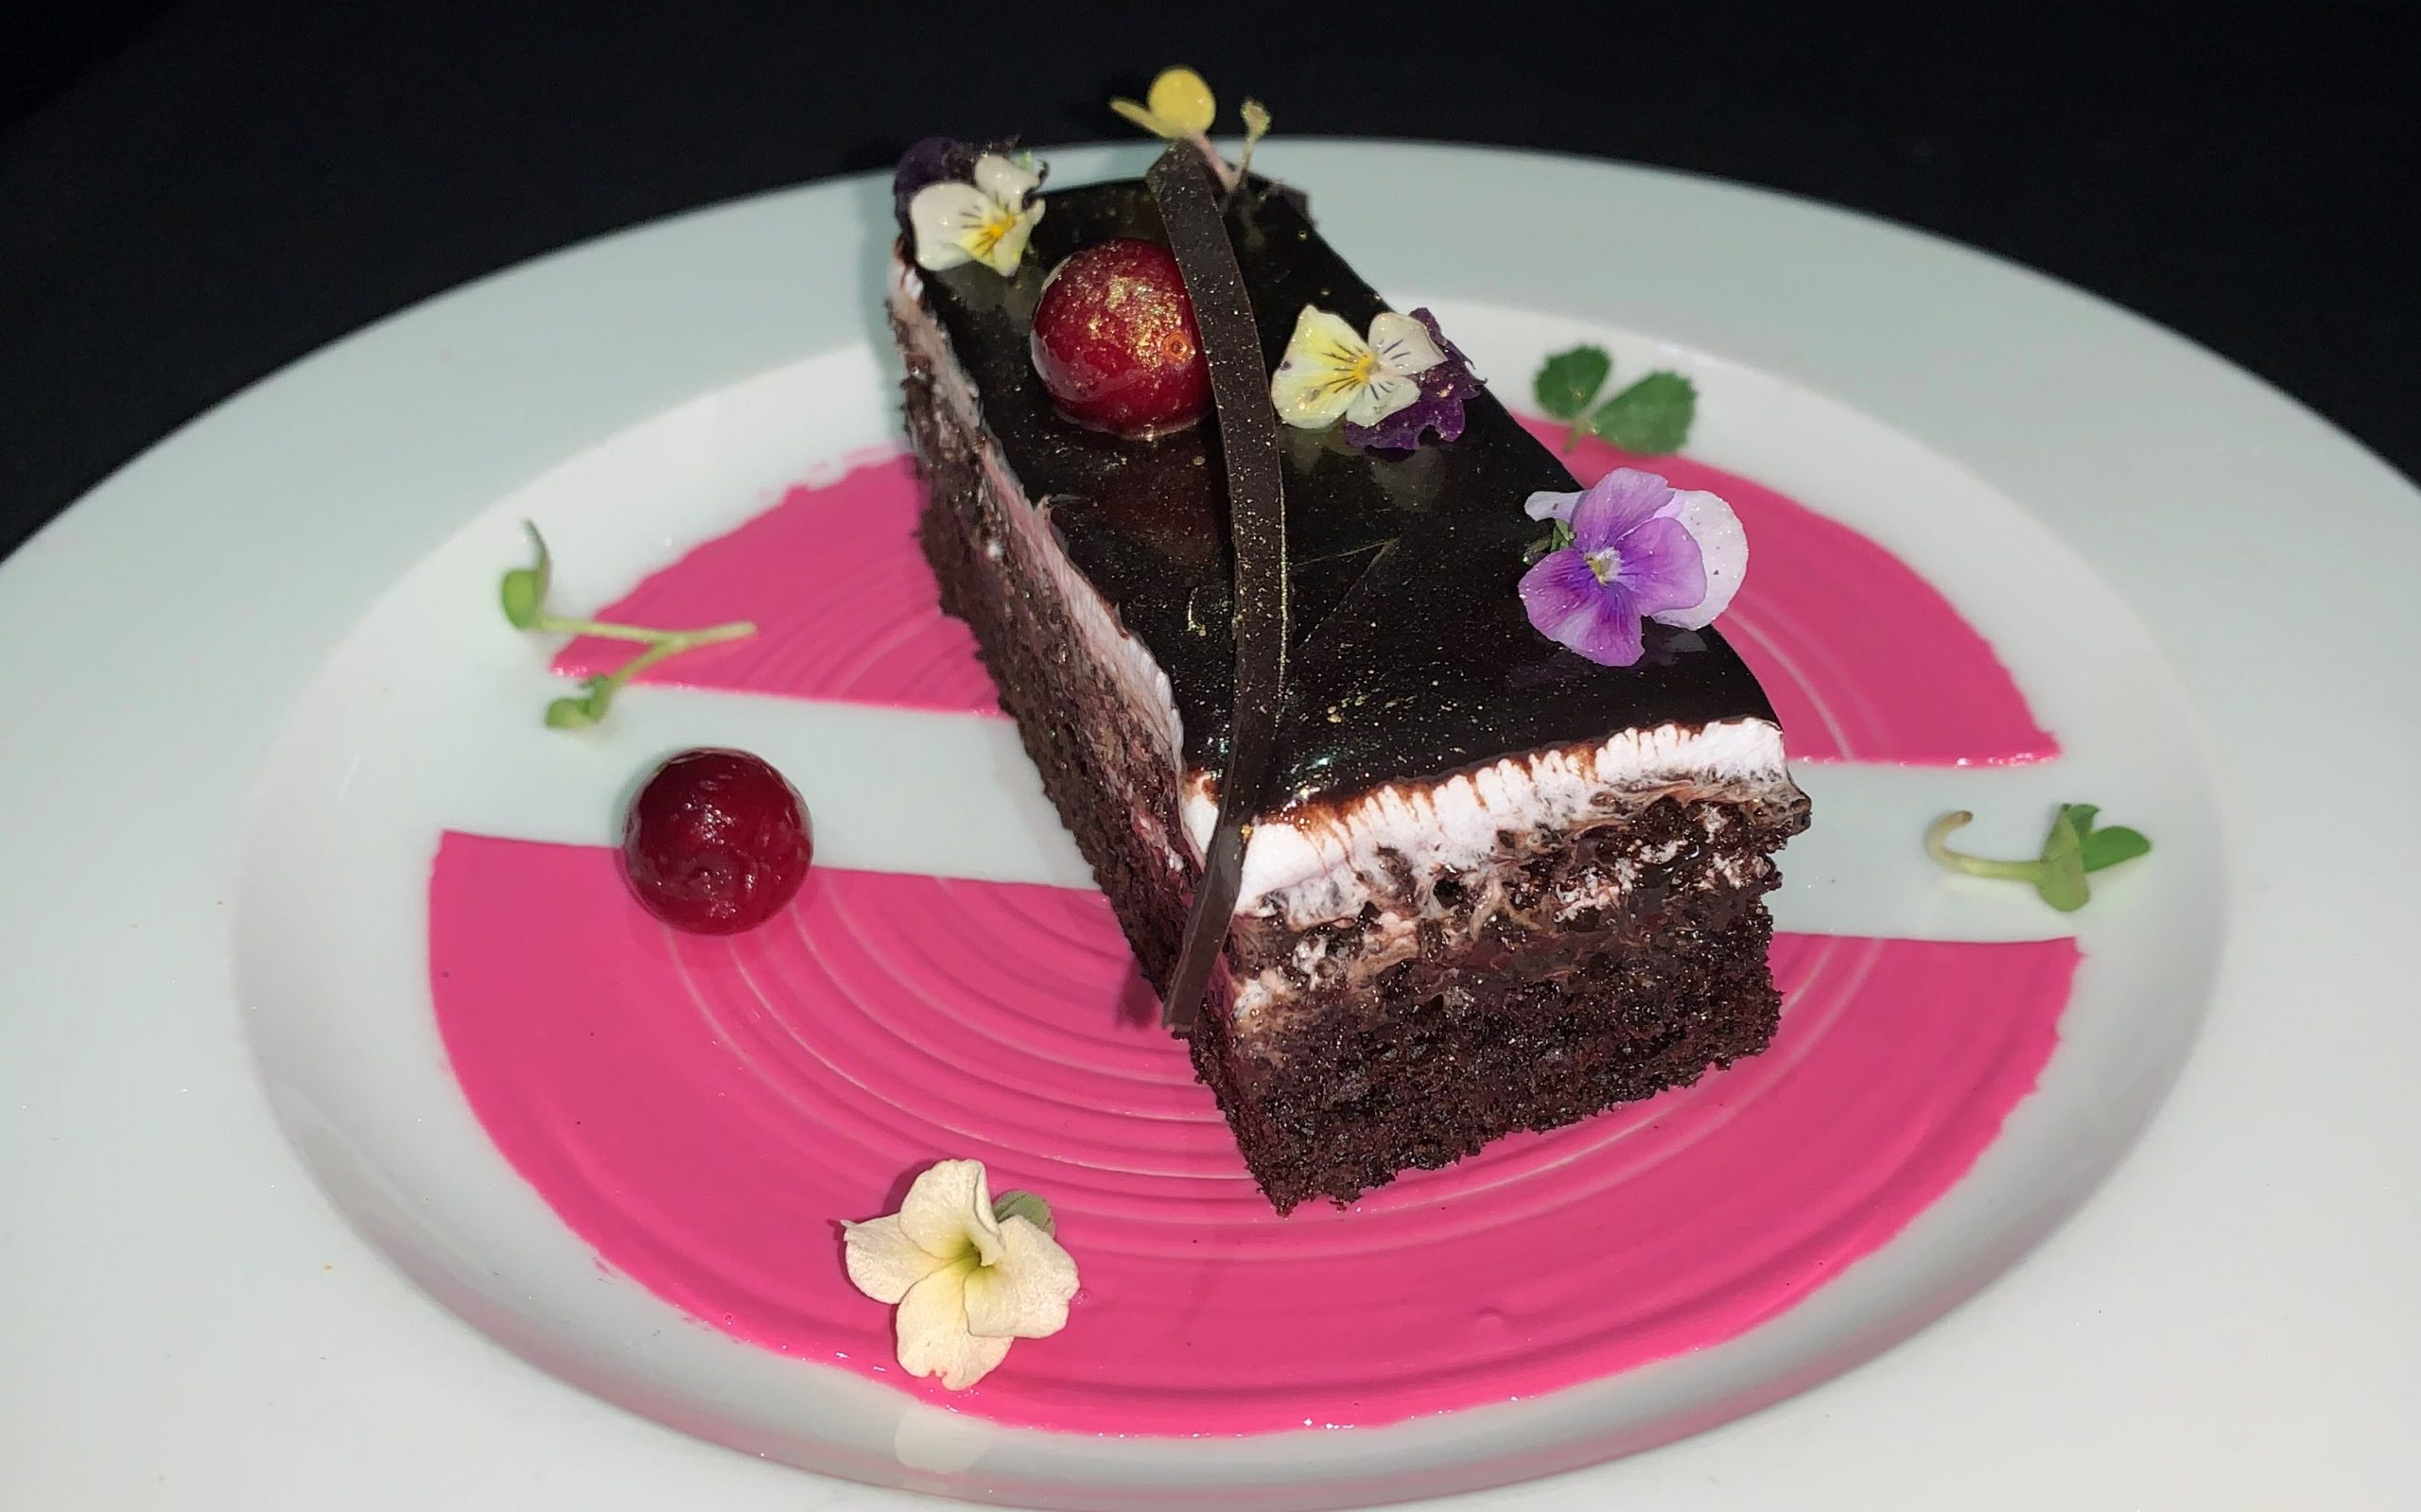 Favourite Choco Delight - Latvian Chocolate Red Current pastry by Exec Chef Debabrata Mukherjee, The Fern, Goregaon